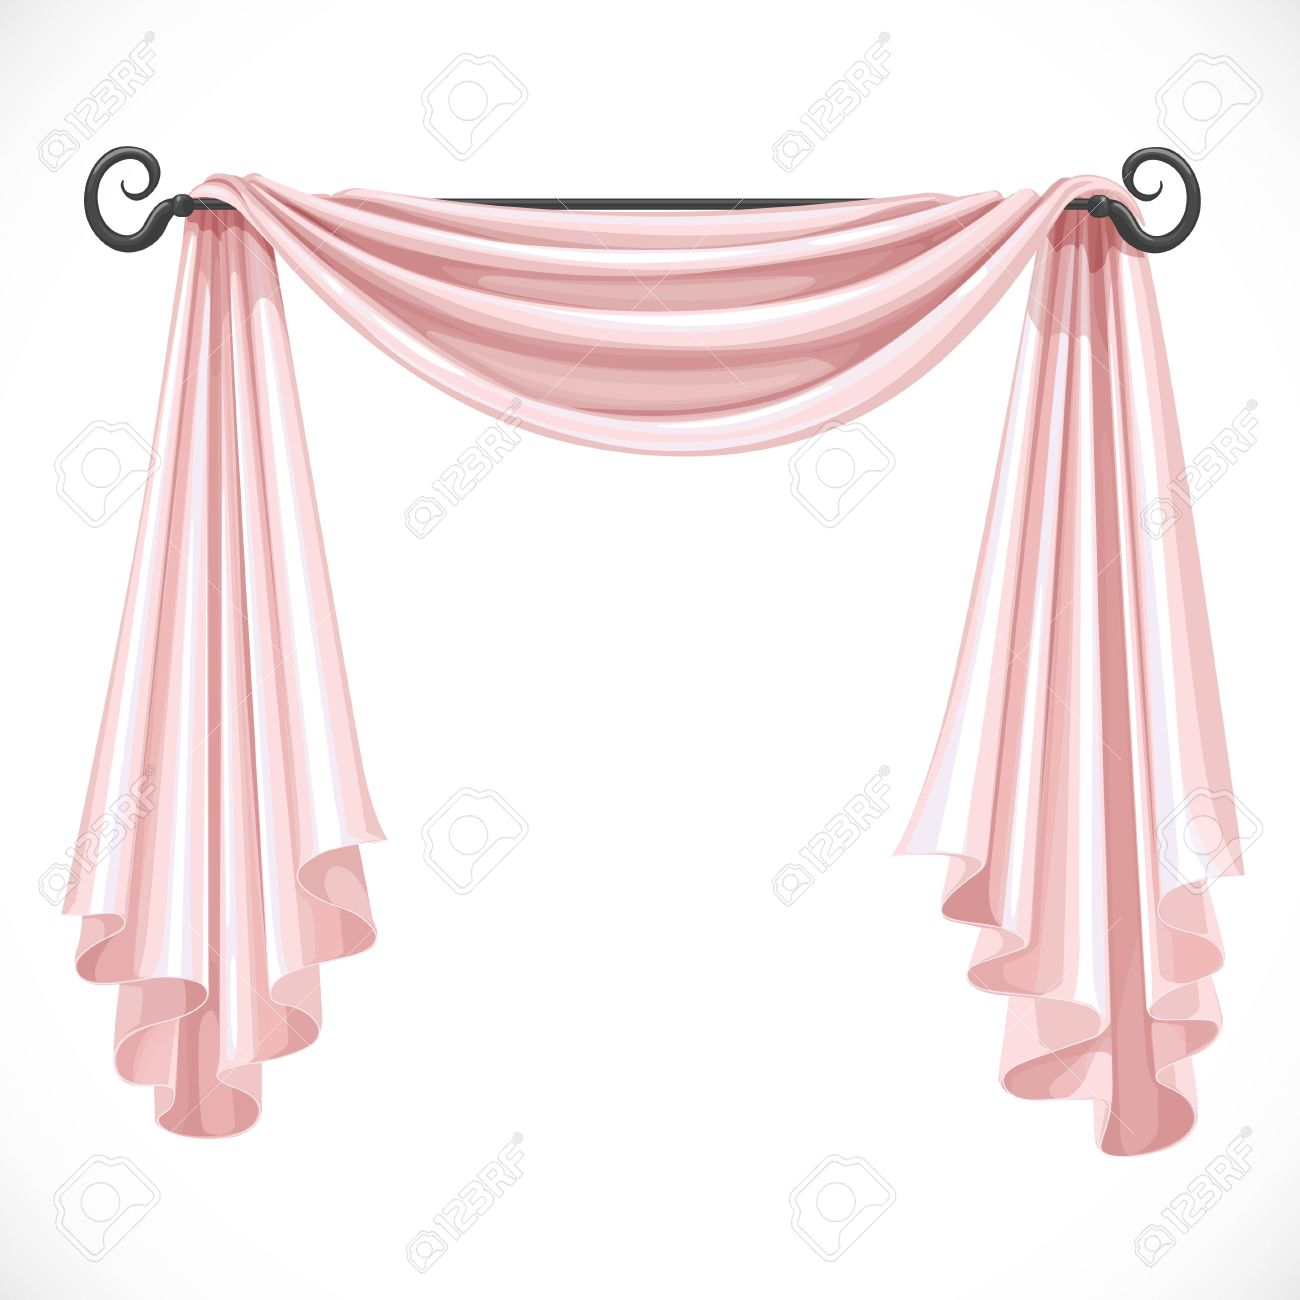 Pink Curtains On The Ledge Forged Isolated A White Background Stock Vector